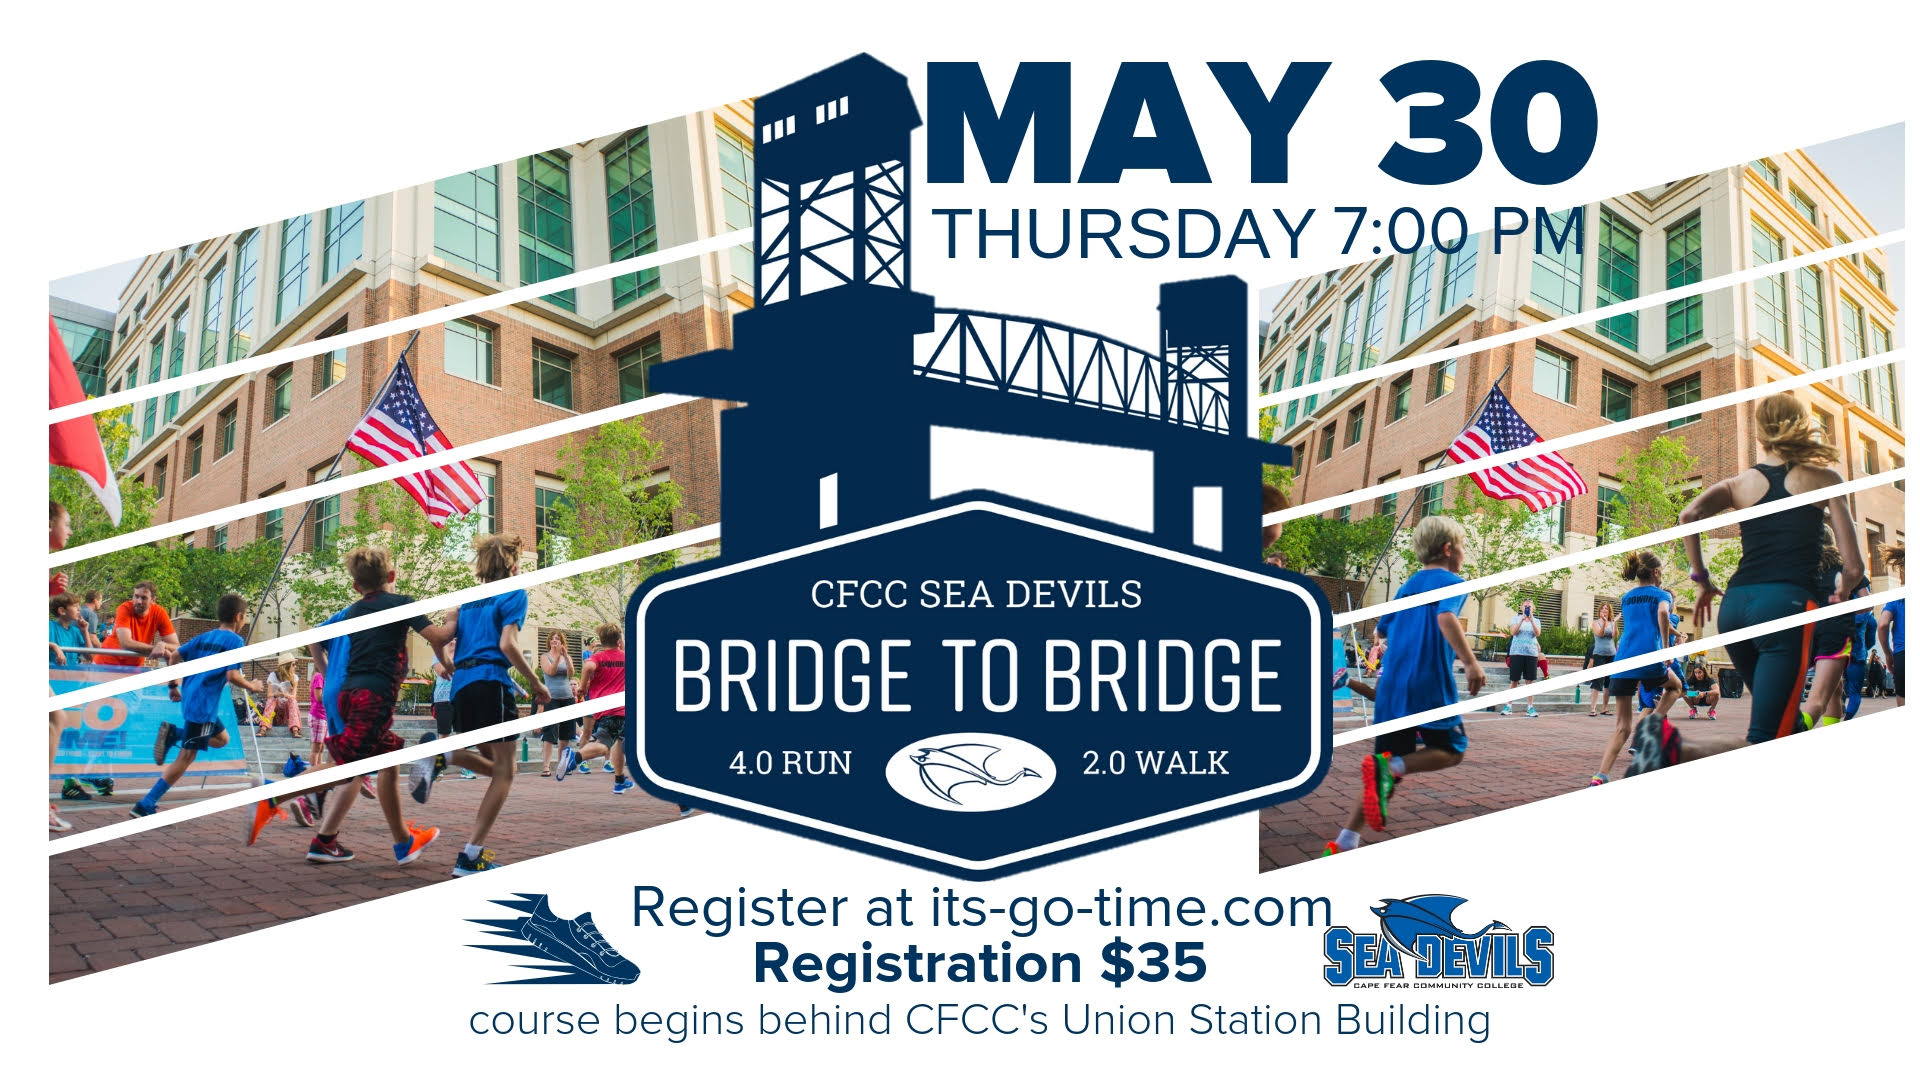 Sign Up Now! Great Race for a Great Cause